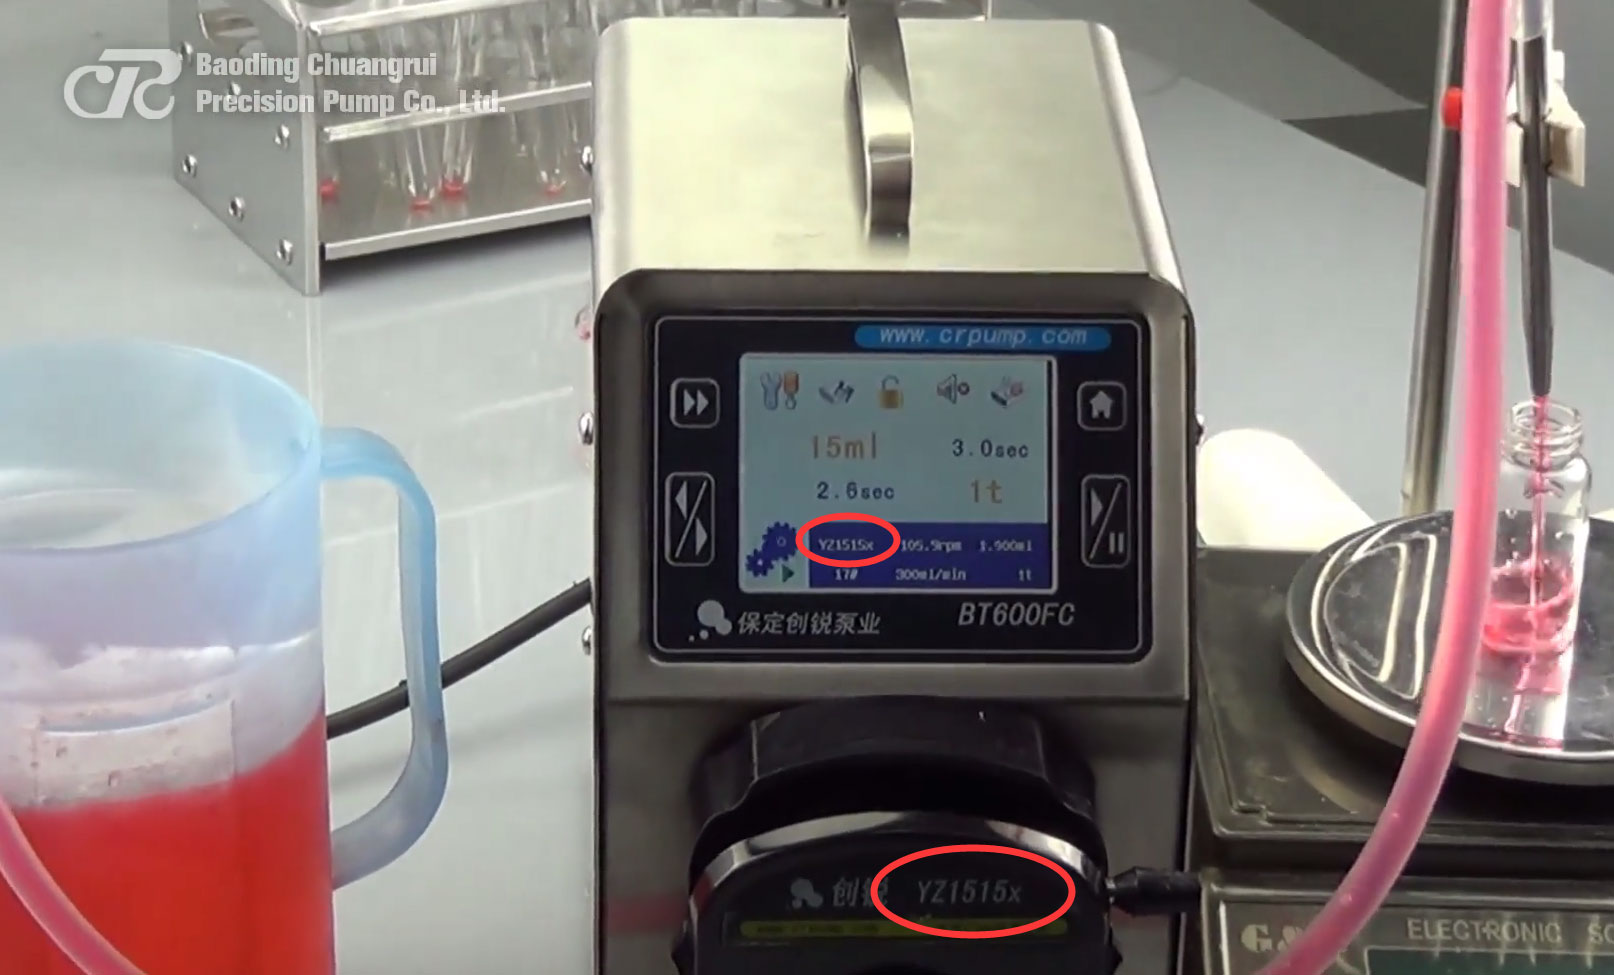 How to properly maintain the peristaltic pump